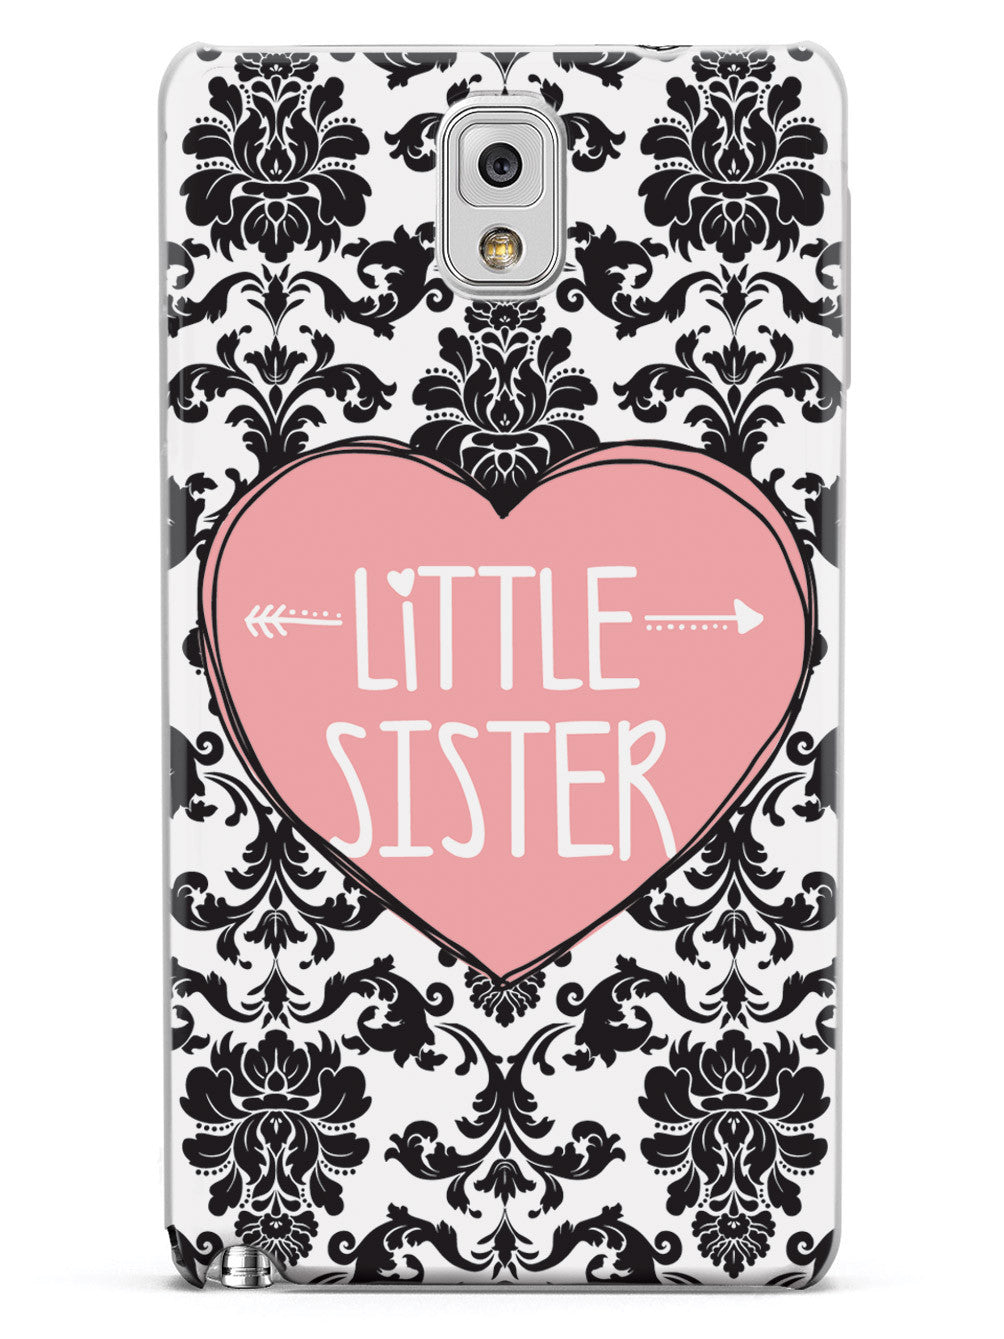 Sisterly Love - Little Sister - Damask Case